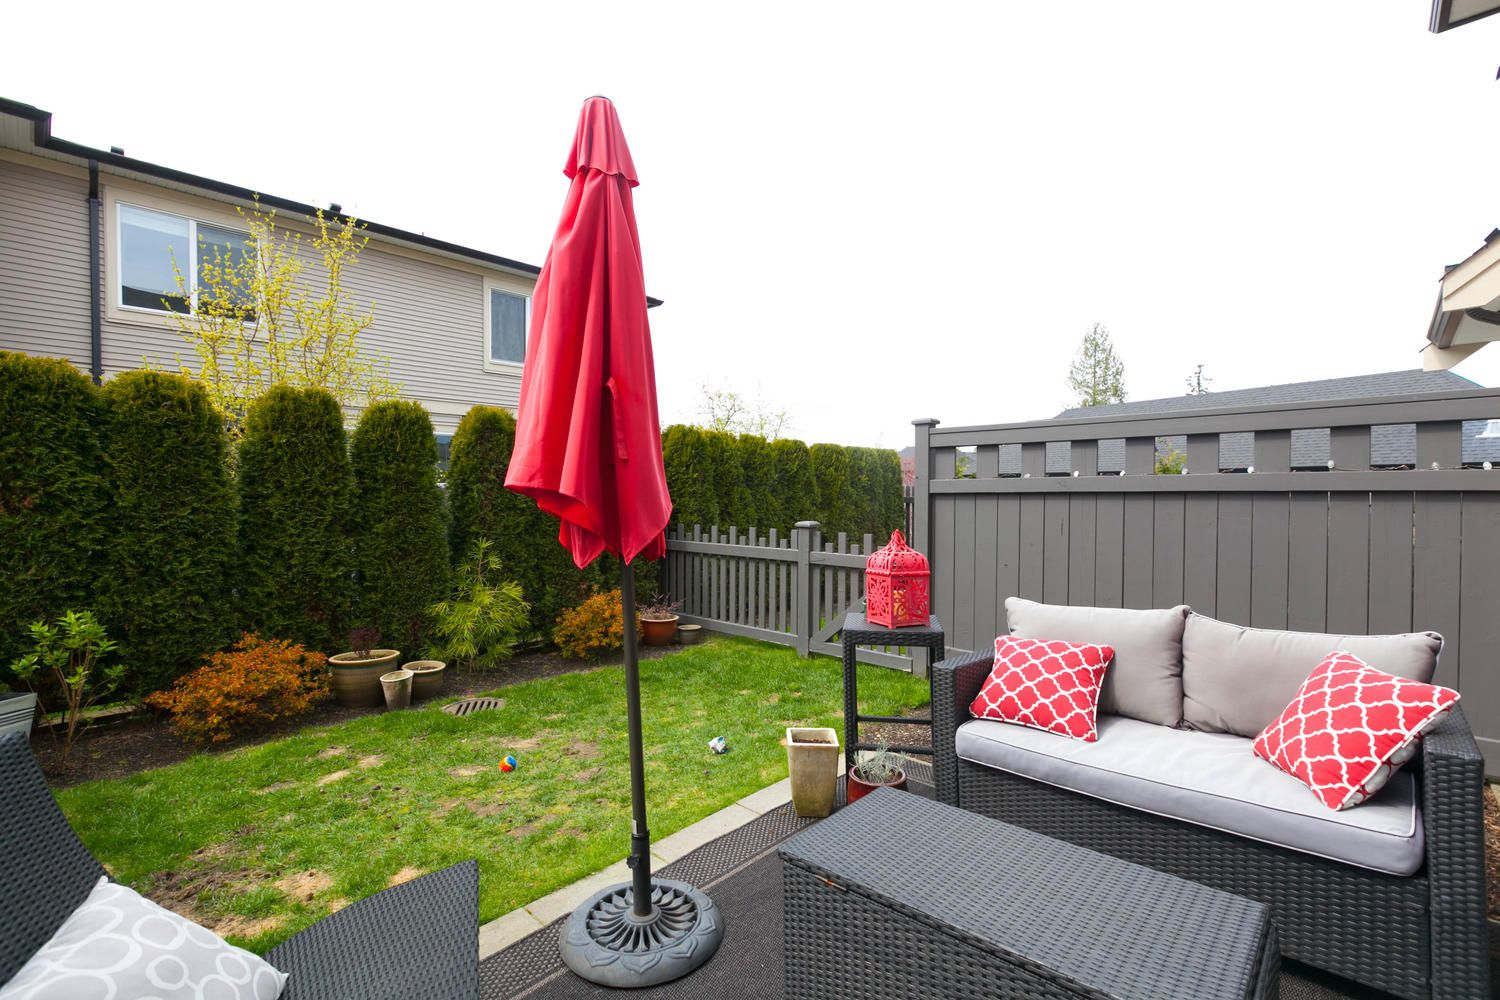 """Photo 39: Photos: 97 7938 209 Street in Langley: Willoughby Heights Townhouse for sale in """"Red Maple Park"""" : MLS®# R2260950"""